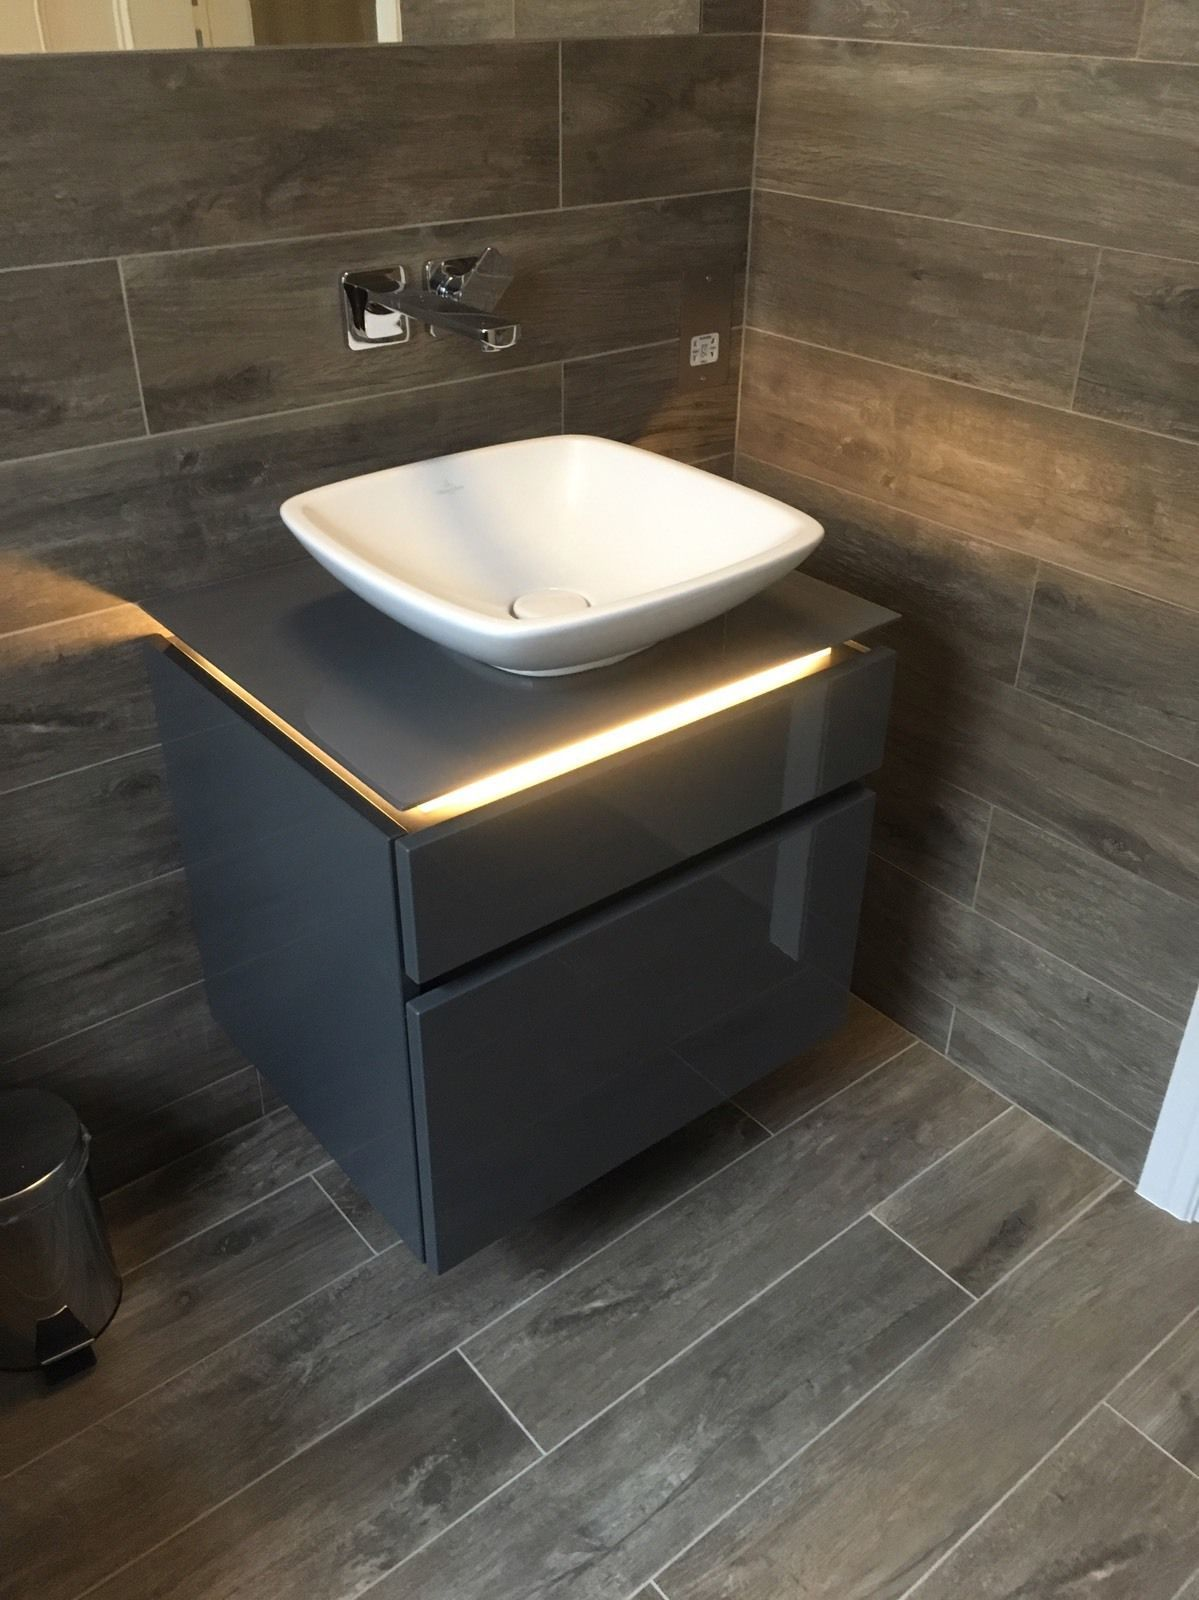 Villeroy and boch bathroom sink - Villeroy Boch Legato Vanity Unit In Glossy Grey 600mm Wide Led No Basin